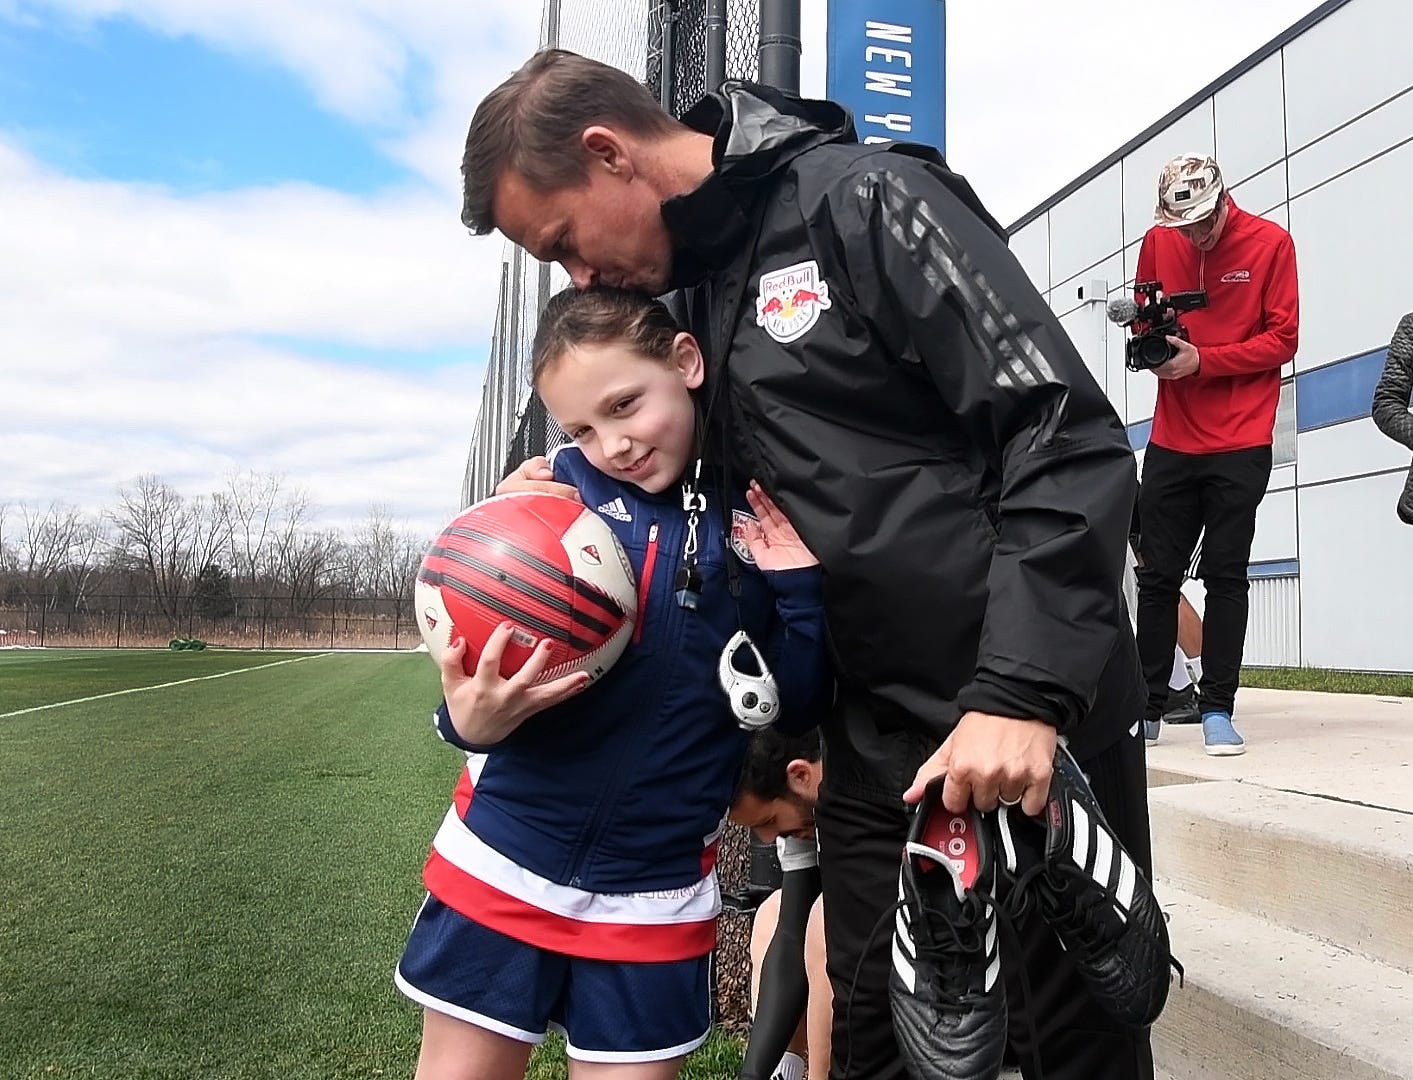 Sullivan: Autism Awareness Night has special meaning for Red Bulls GM